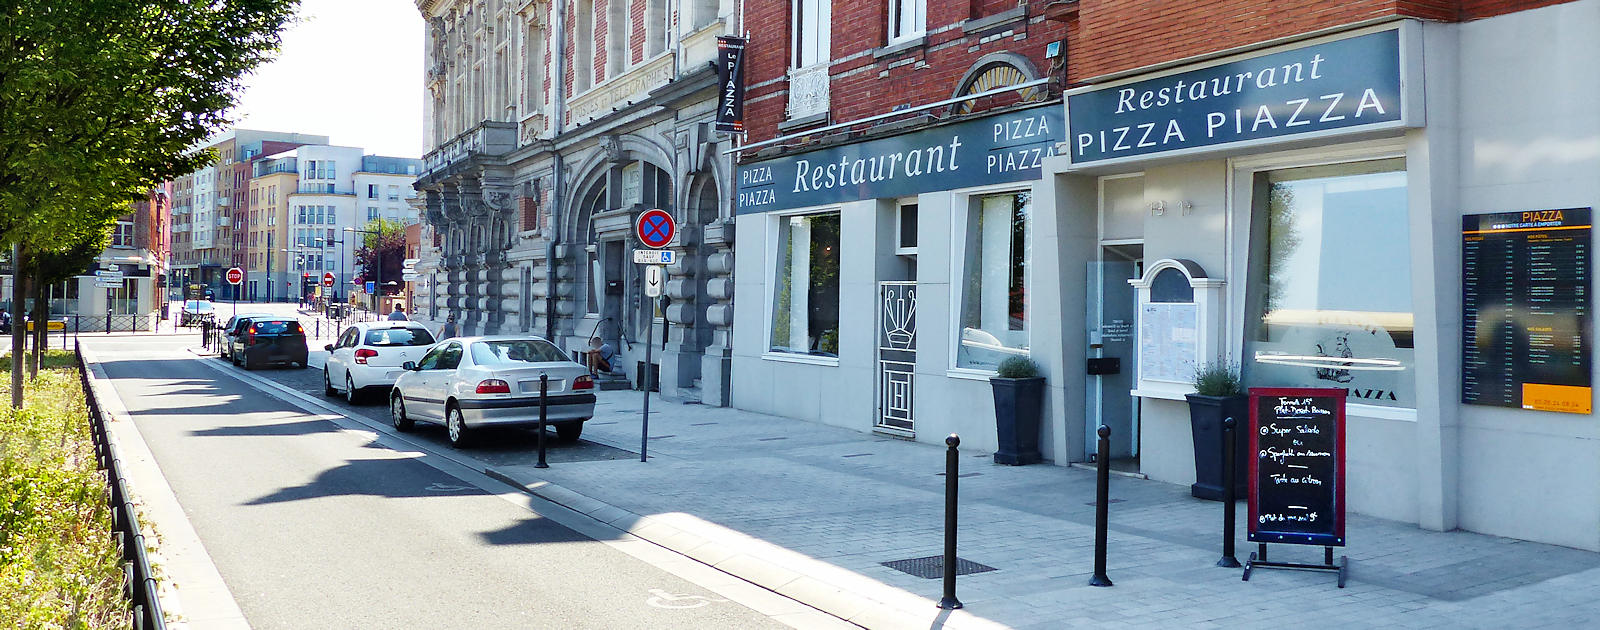 Restaurant italien Pizza Piazza, Place Roussel, Tourcoing